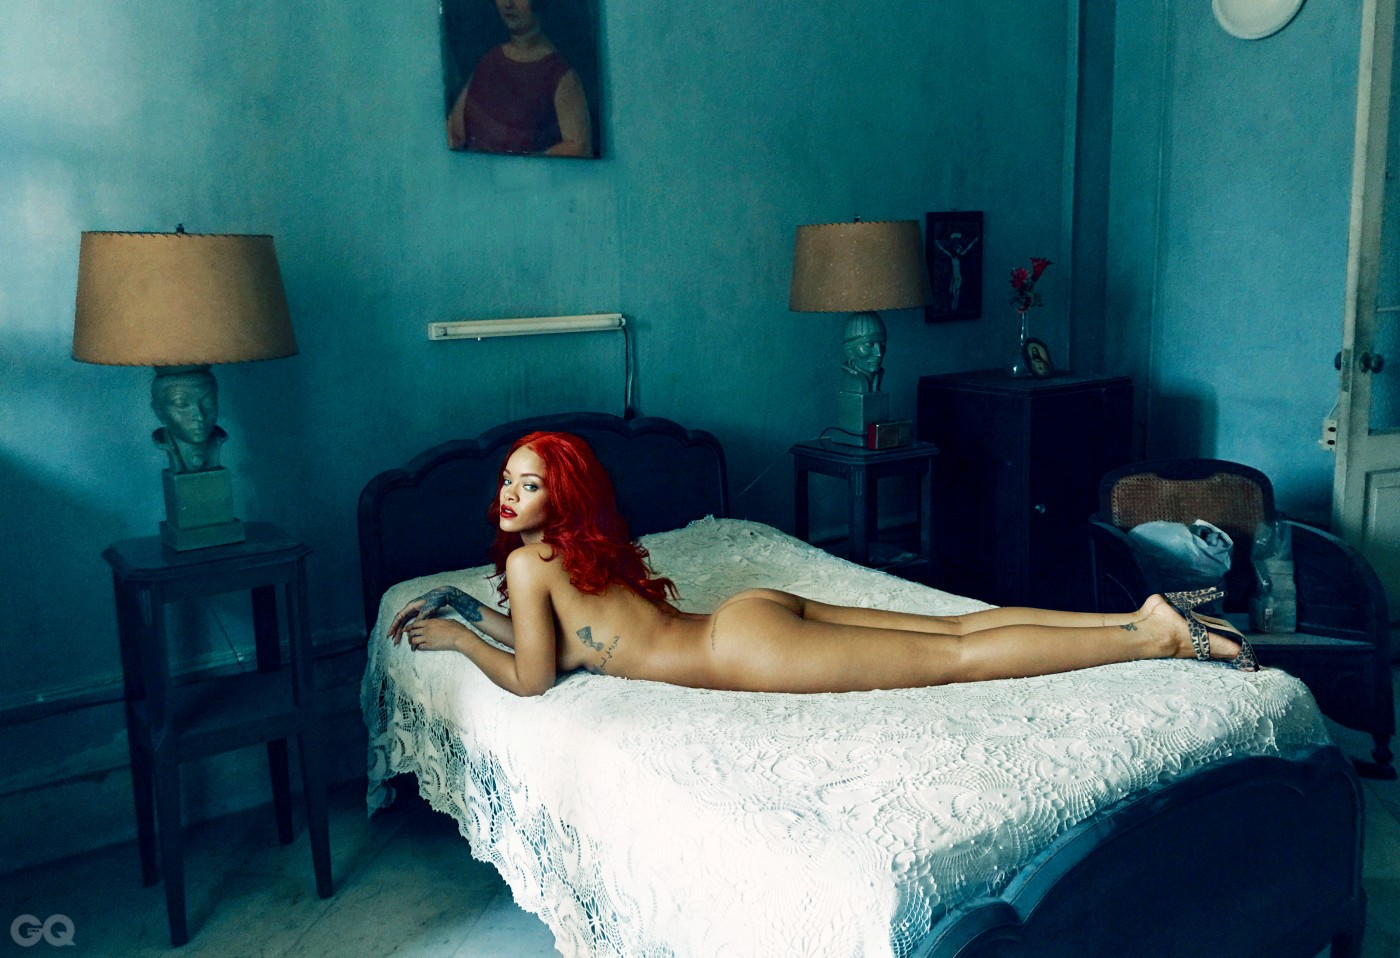 UNAPOLOGETIC           Rihanna bares all in the bedroom of the Josie Alonso House.